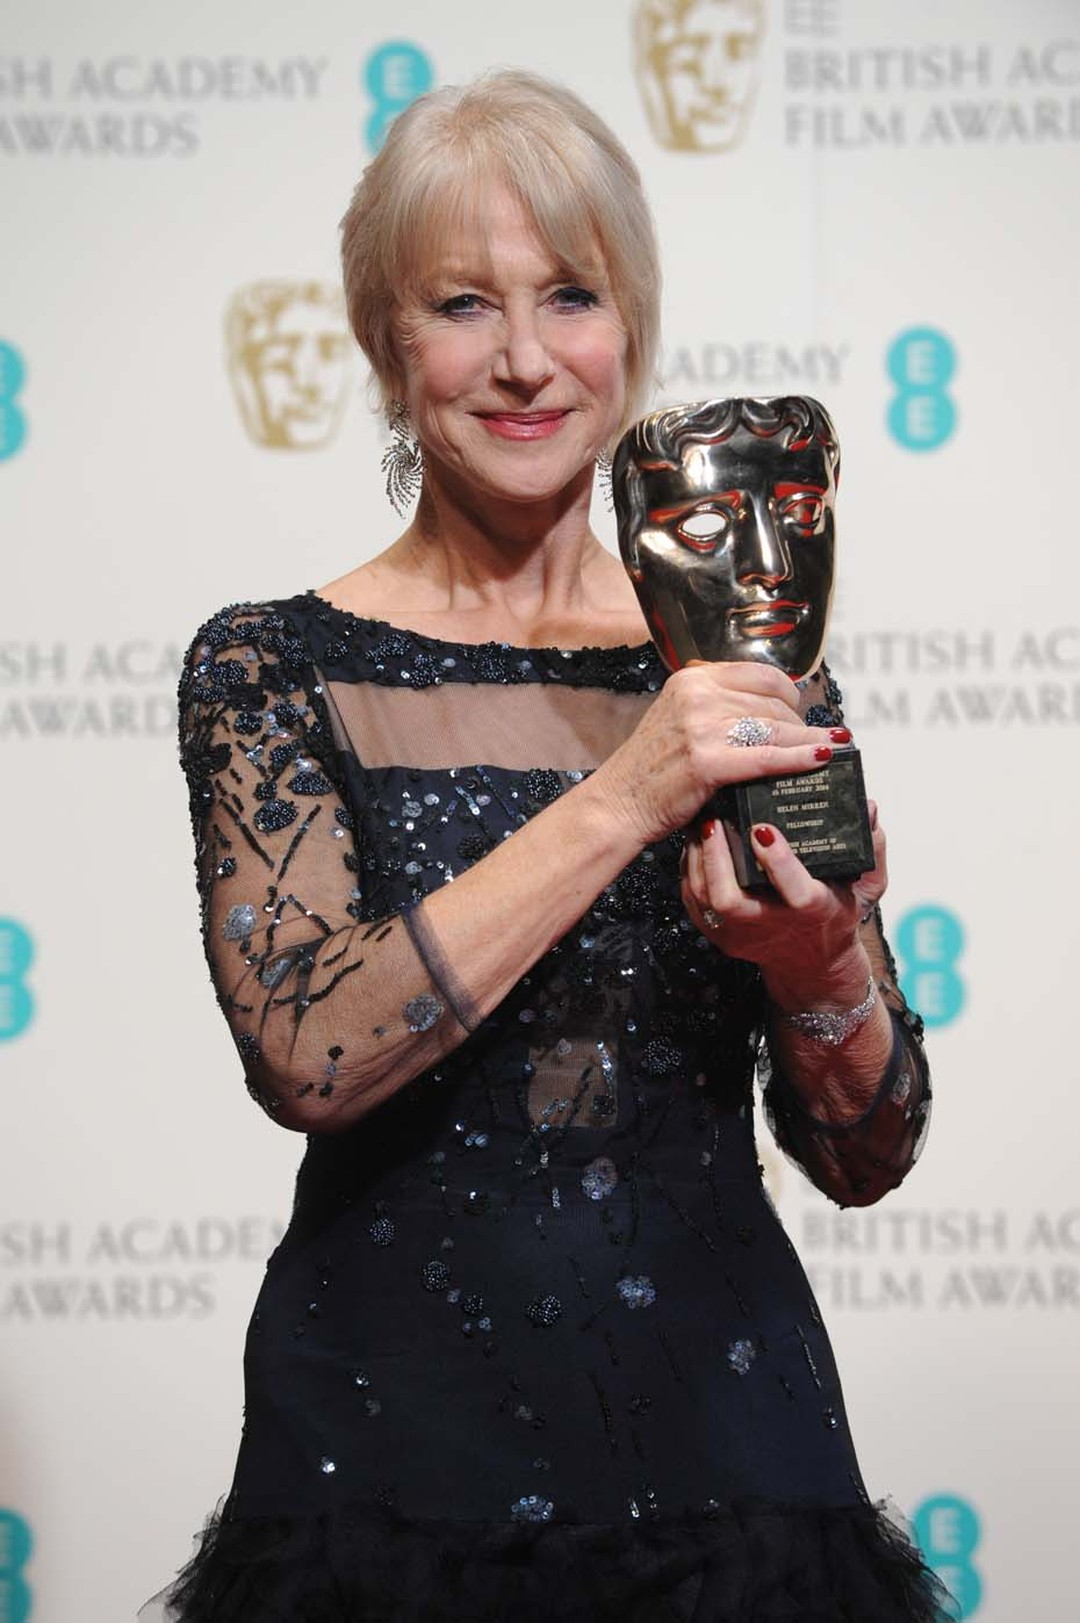 The Bafta fellowship for 2014 was awarded to Helen Mirren, who wore jewels from Asprey's new diamond Storm collection